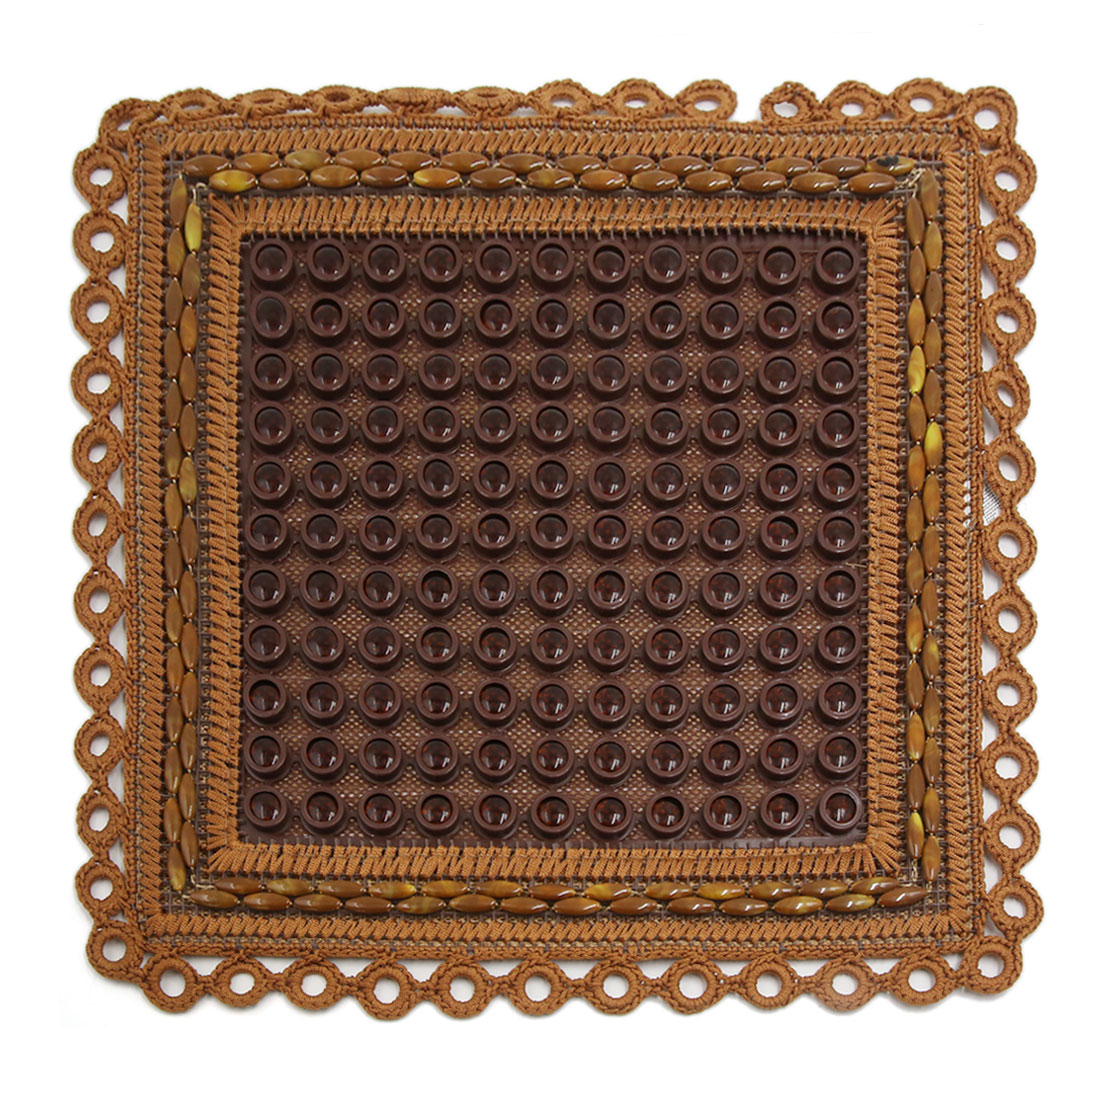 45 x 45cm Brown Sqaure Shape Multi Plastic Beads Seat Cushion Pad for Auto Car